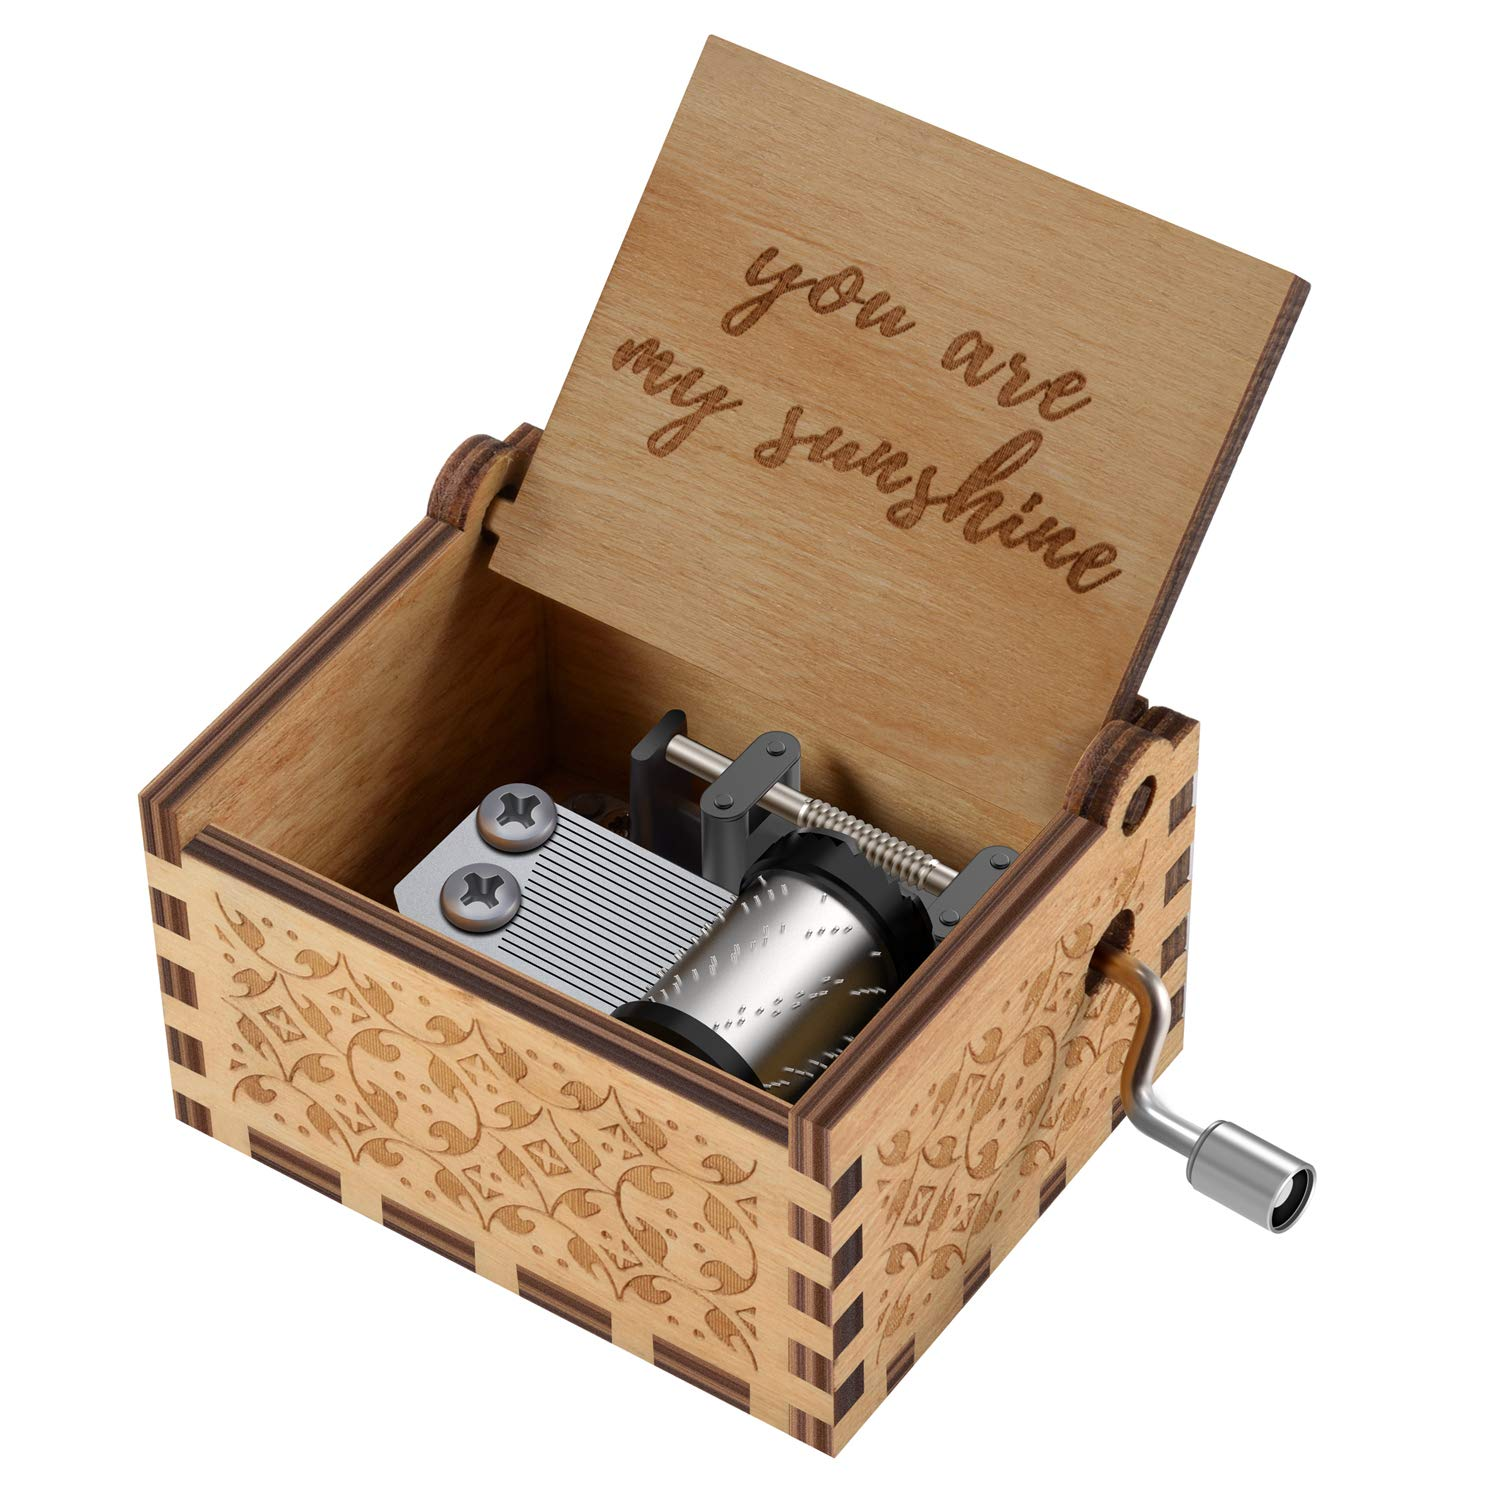 You are My Sunshine Wood Music Boxes,Laser Engraved Vintage Wooden Sunshine Musical Box Gifts for Birthday/Christmas/Valentine's Day (Wood) by Huntmic